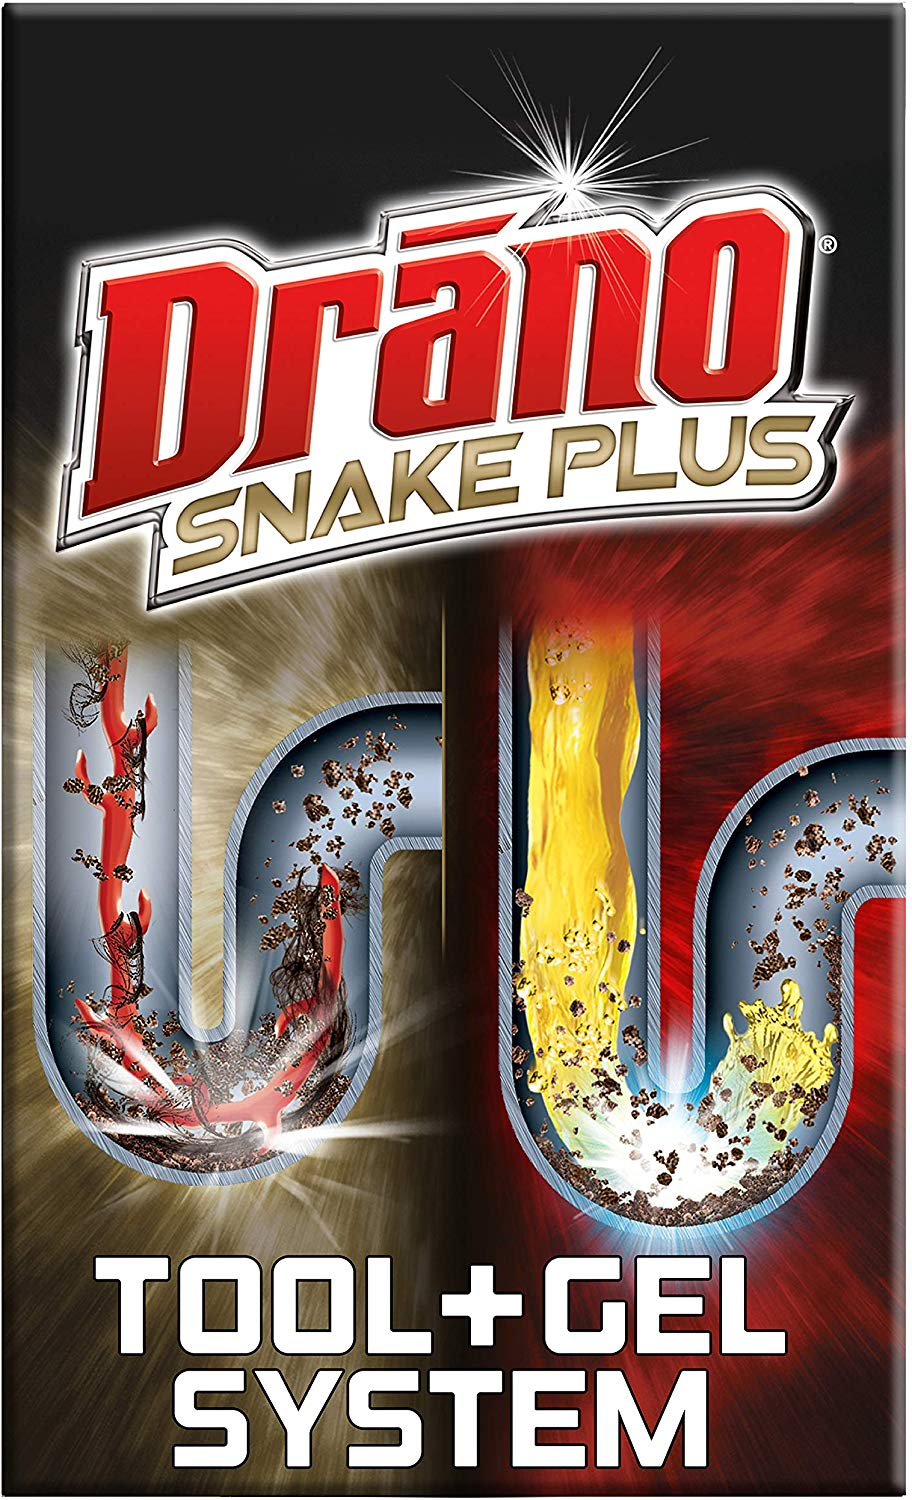 Drano Snake Plus Tool + Gel System only $2.72! (was $6)